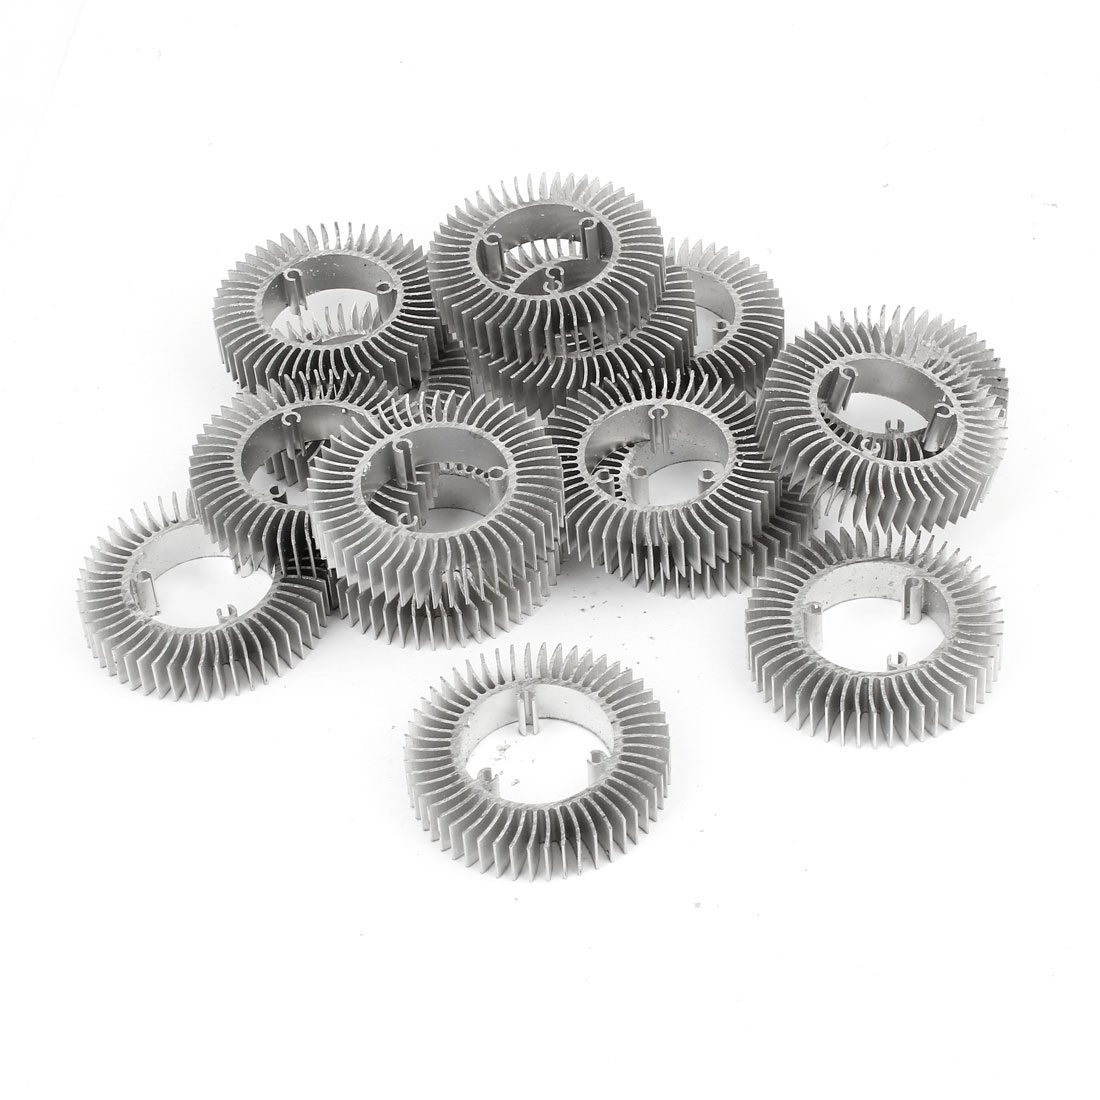 15 Pcs Round Shaped 50mm OD 28.5mm ID 10mm Height LED Light Heatsink Cooling Fin